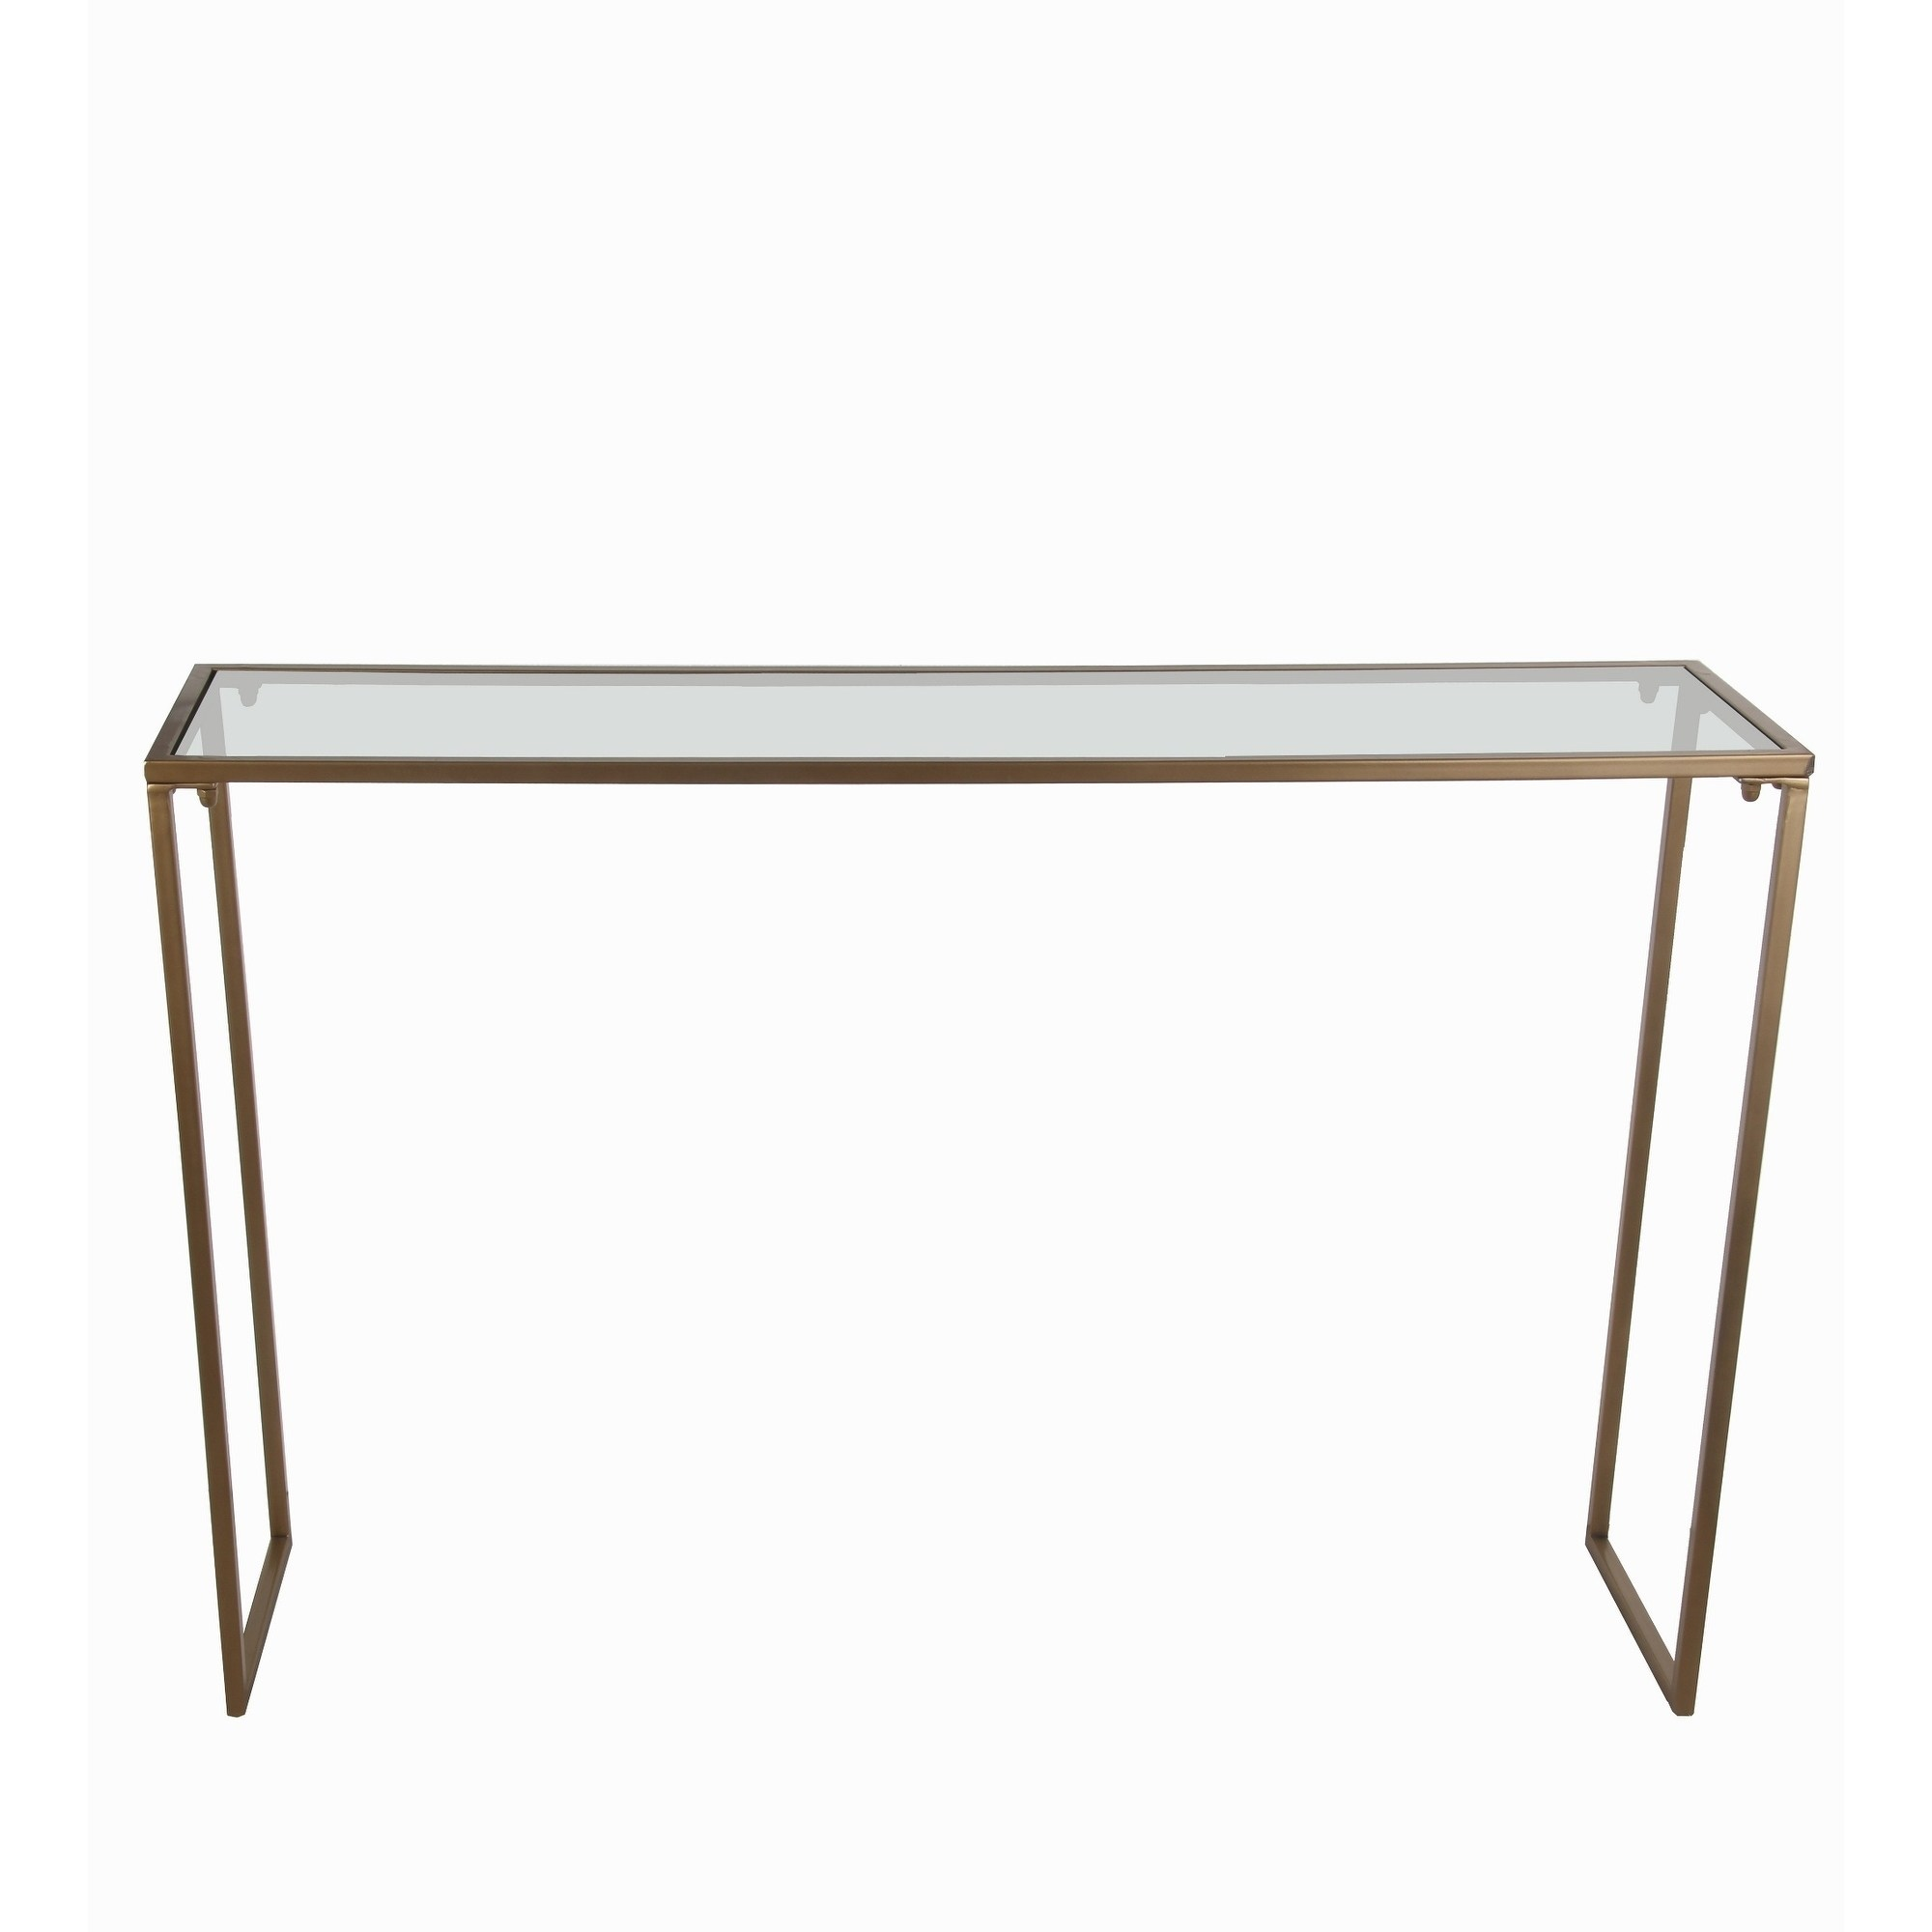 privilege gold iron and glass top accent console table free featuring metal shipping today elegant placemats small round with screw legs stackable outdoor tables replacement